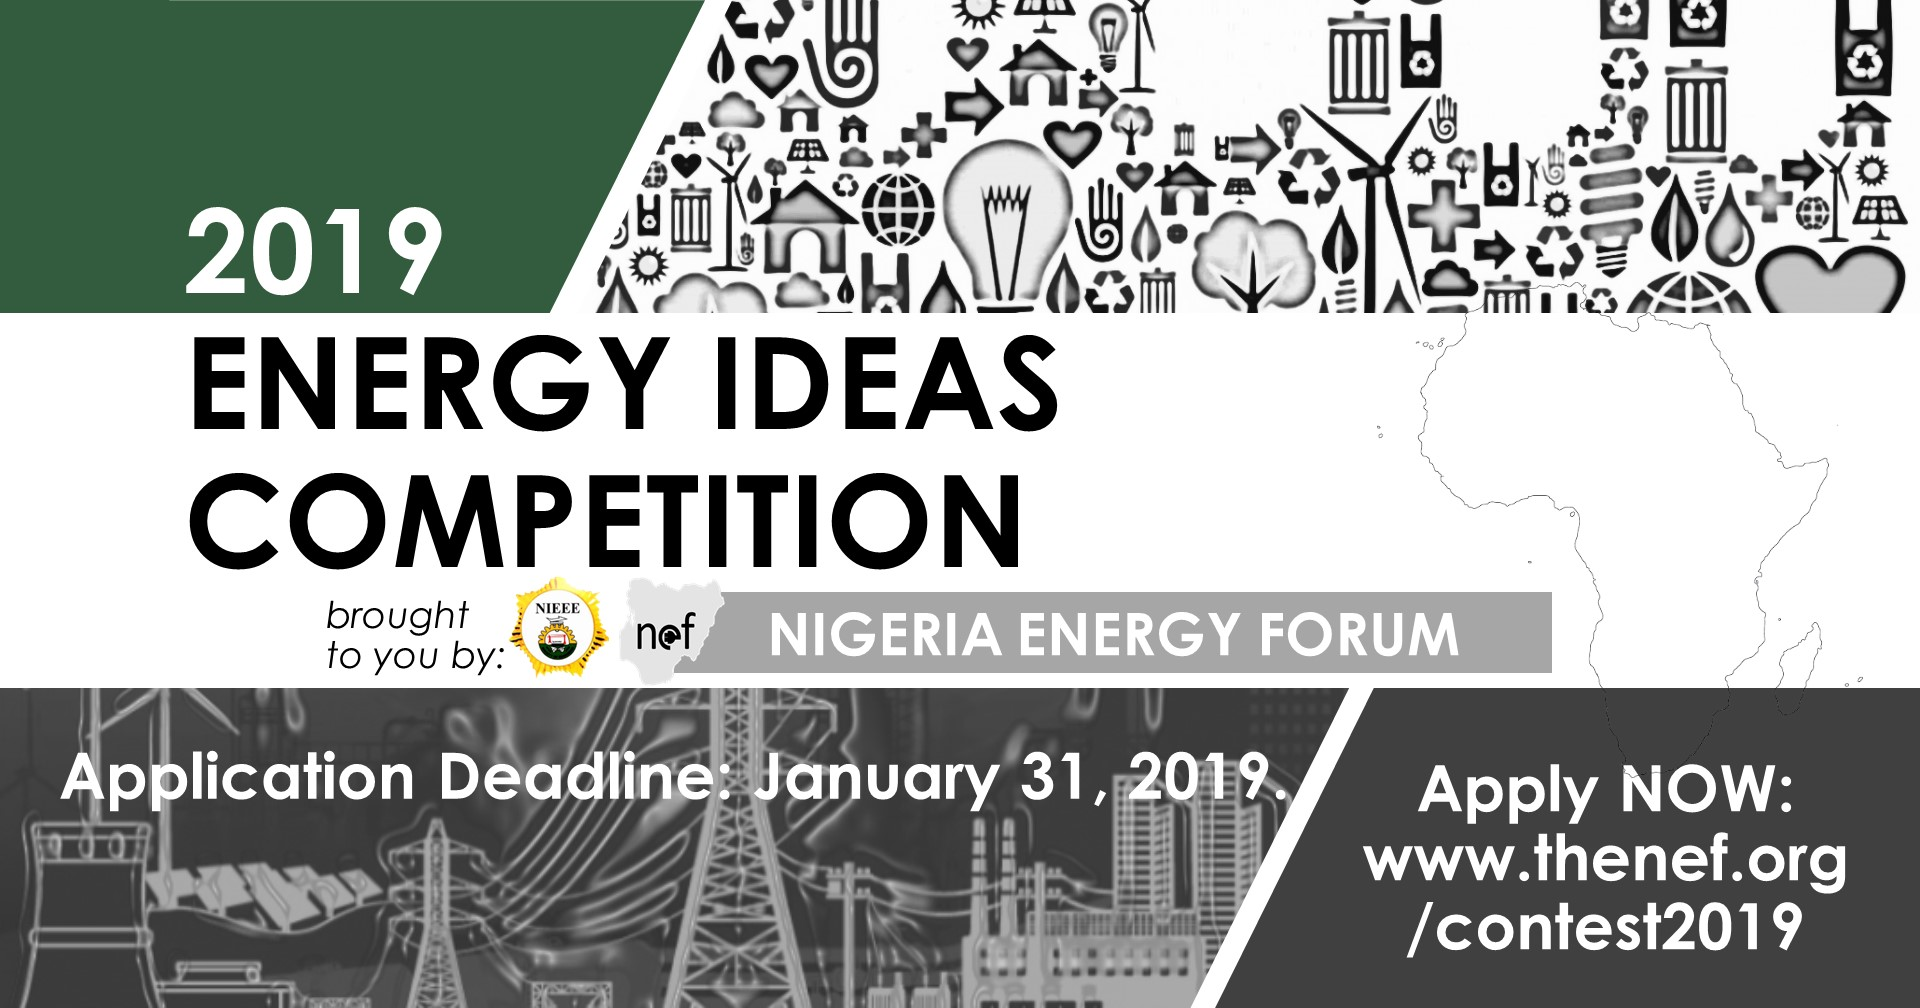 NEF Africa Energy Innovation Challenge 2019 (USD $5,000 prize)